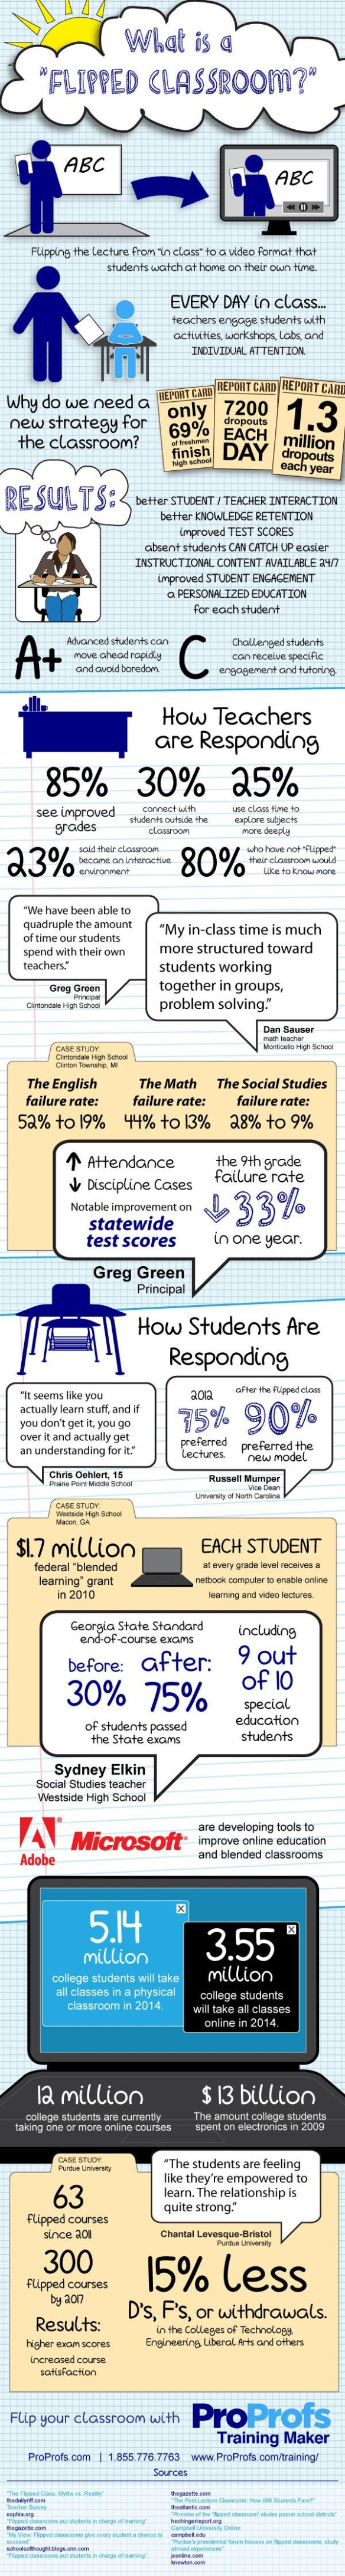 What-is-a-Flipped-Classroom-Infographic